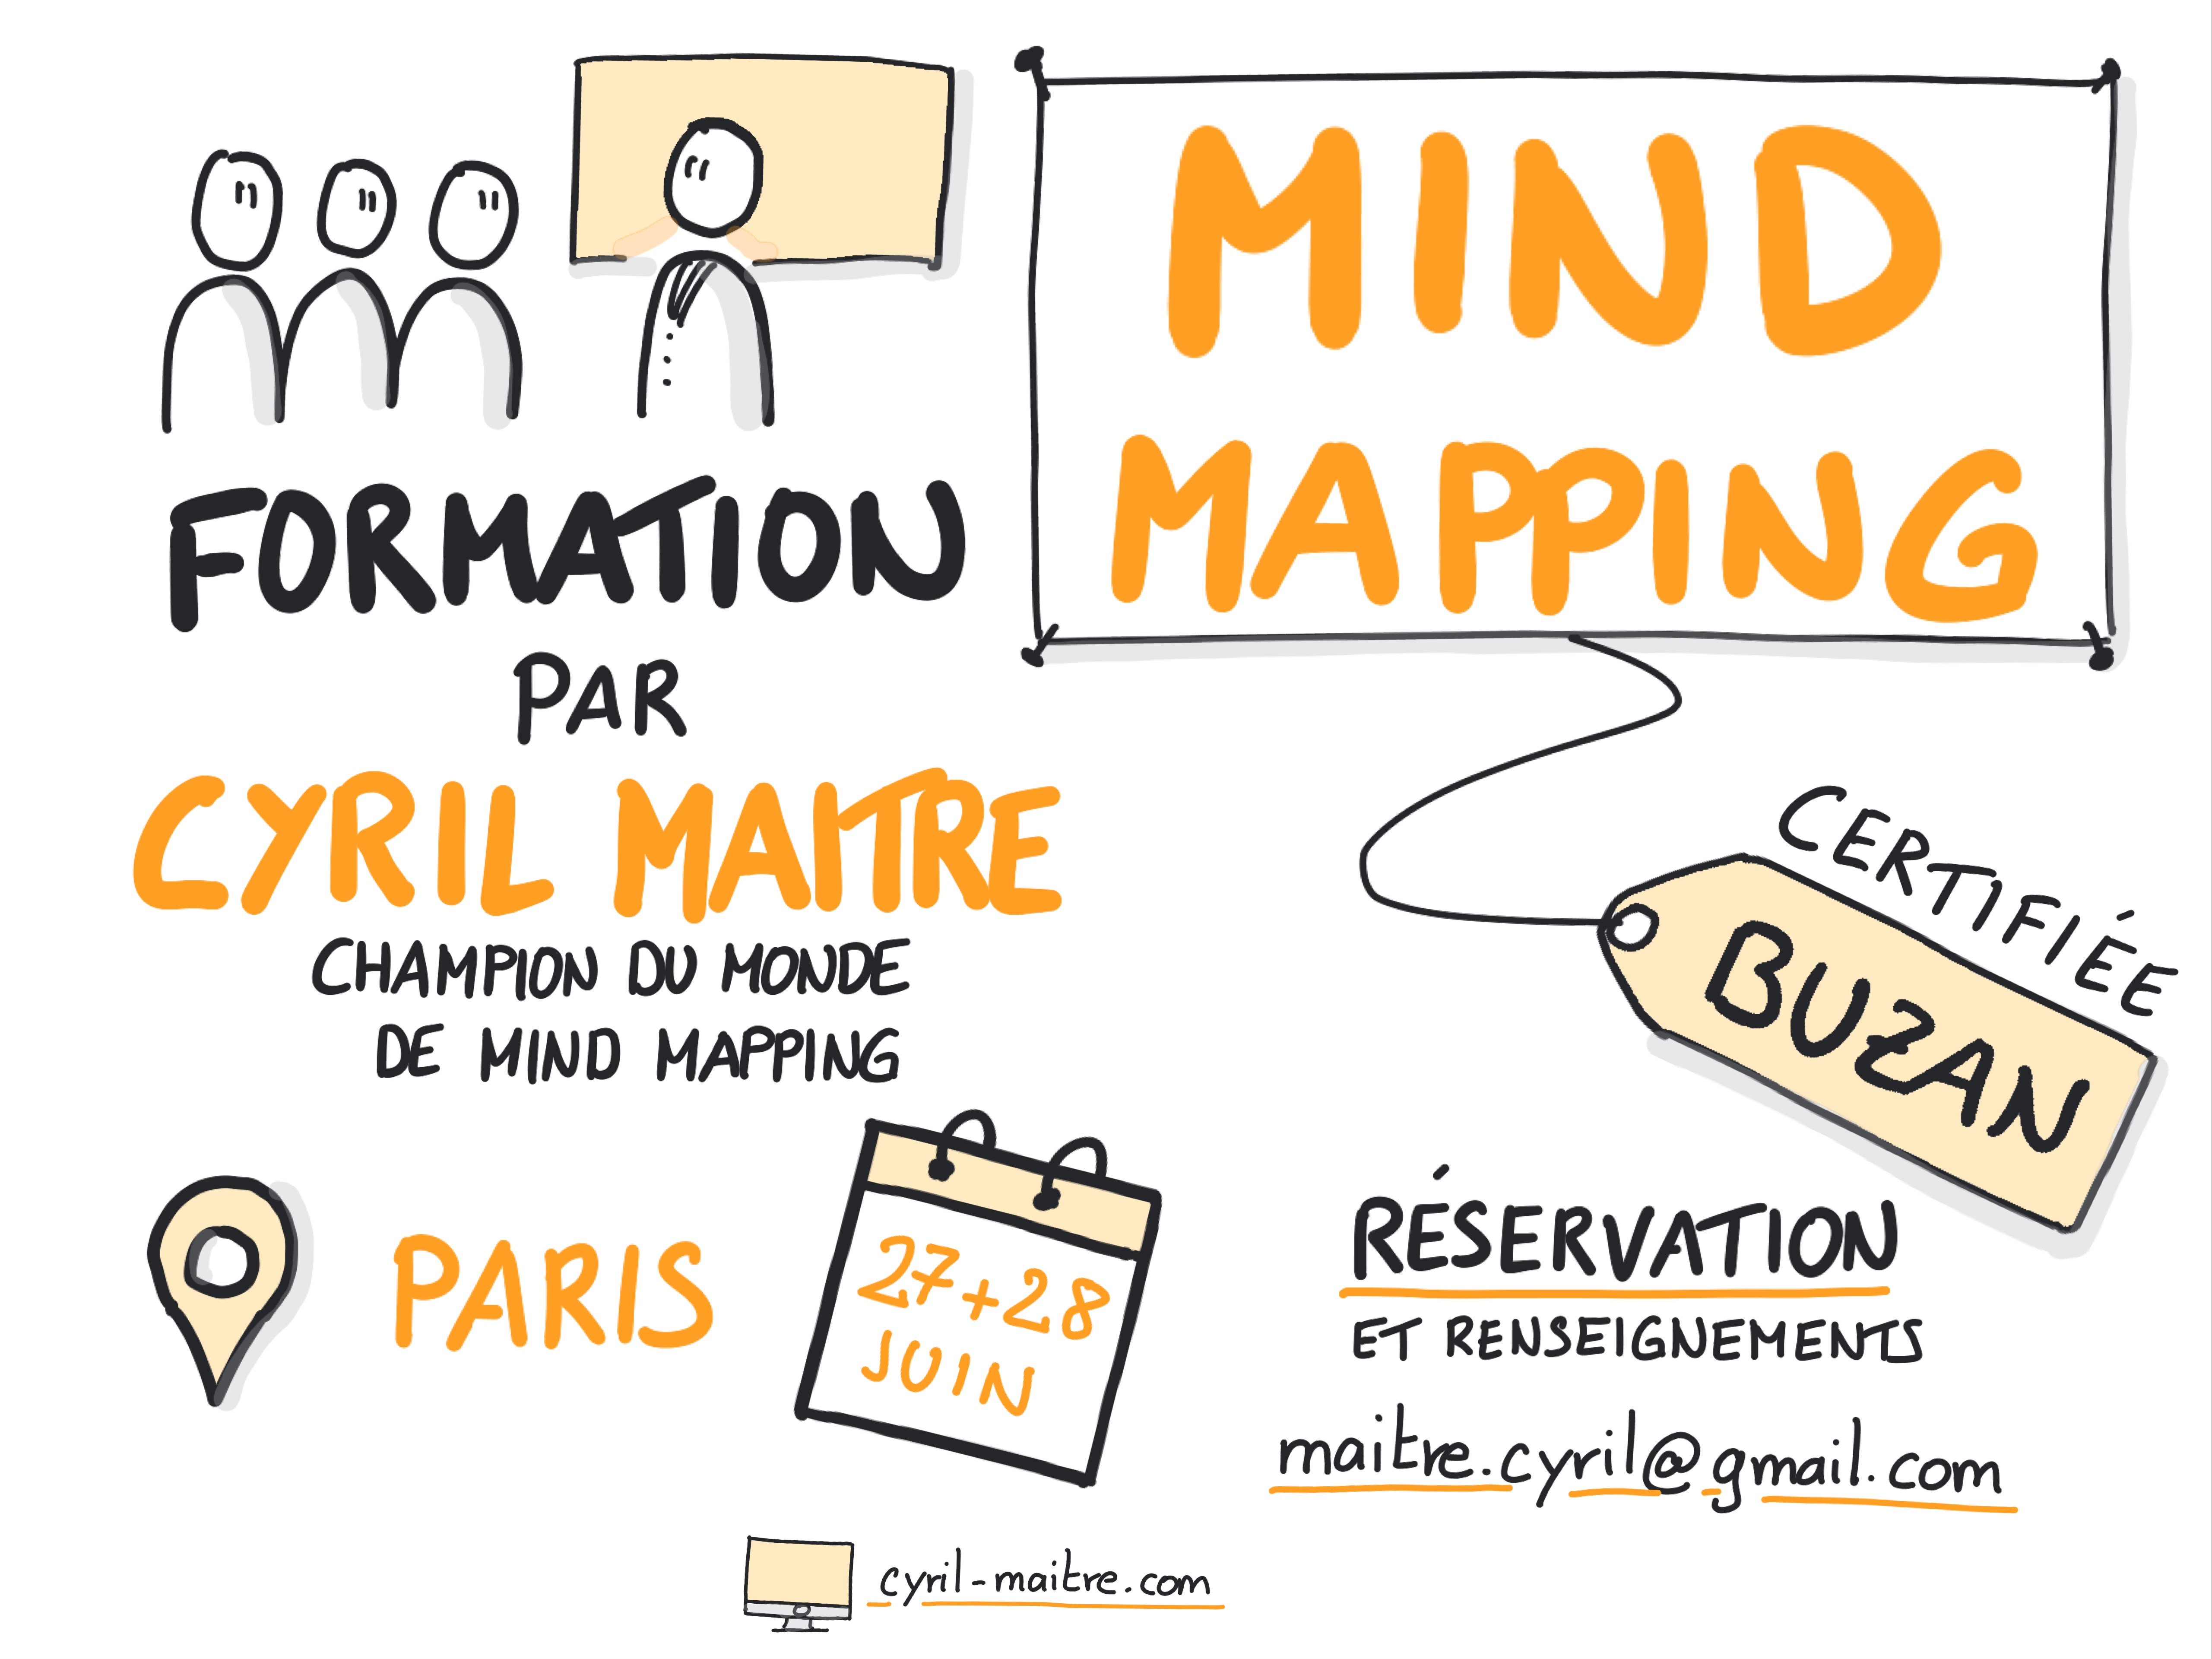 mind mapping paris juin 2019